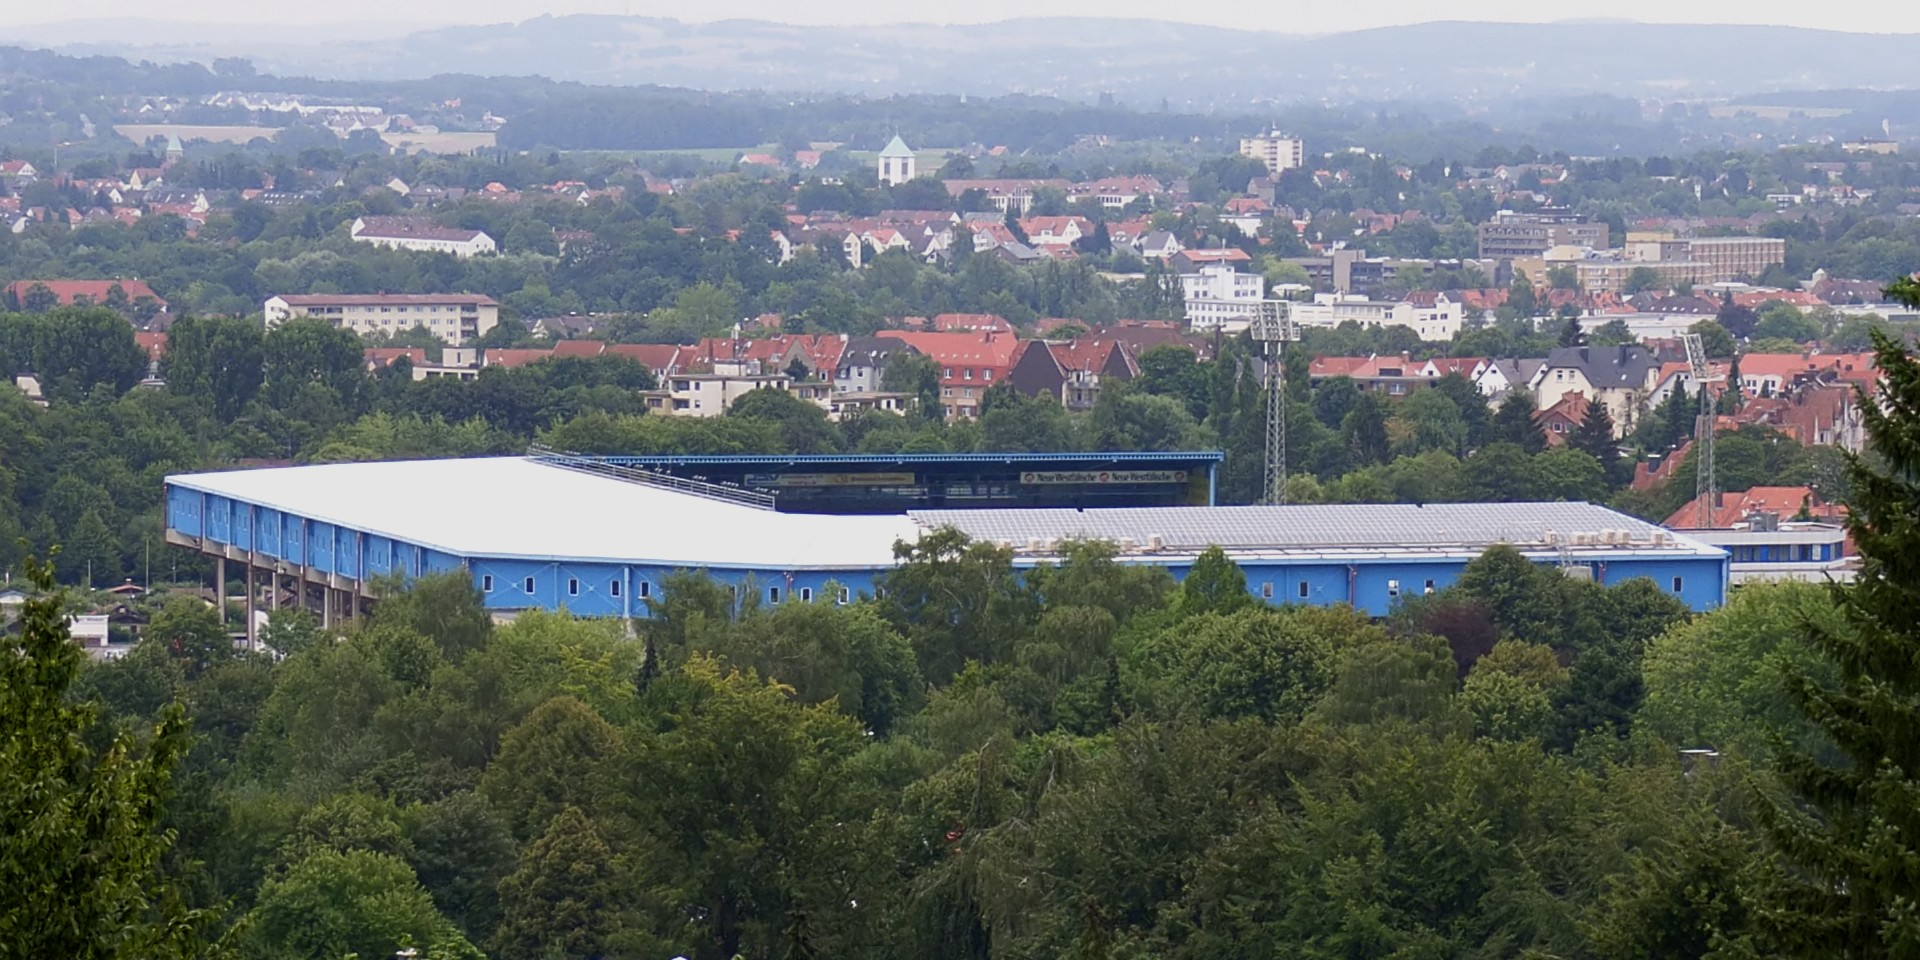 """Bielefeld SchücoArena"" by Zefram - Own work (own photography). Licensed under CC BY 2.0 de via Wikimedia Commons - http://commons.wikimedia.org/wiki/File:Bielefeld_Sch%C3%BCcoArena.jpg#/media/File:Bielefeld_Sch%C3%BCcoArena.jpg Bielefeld_SchücoArena"